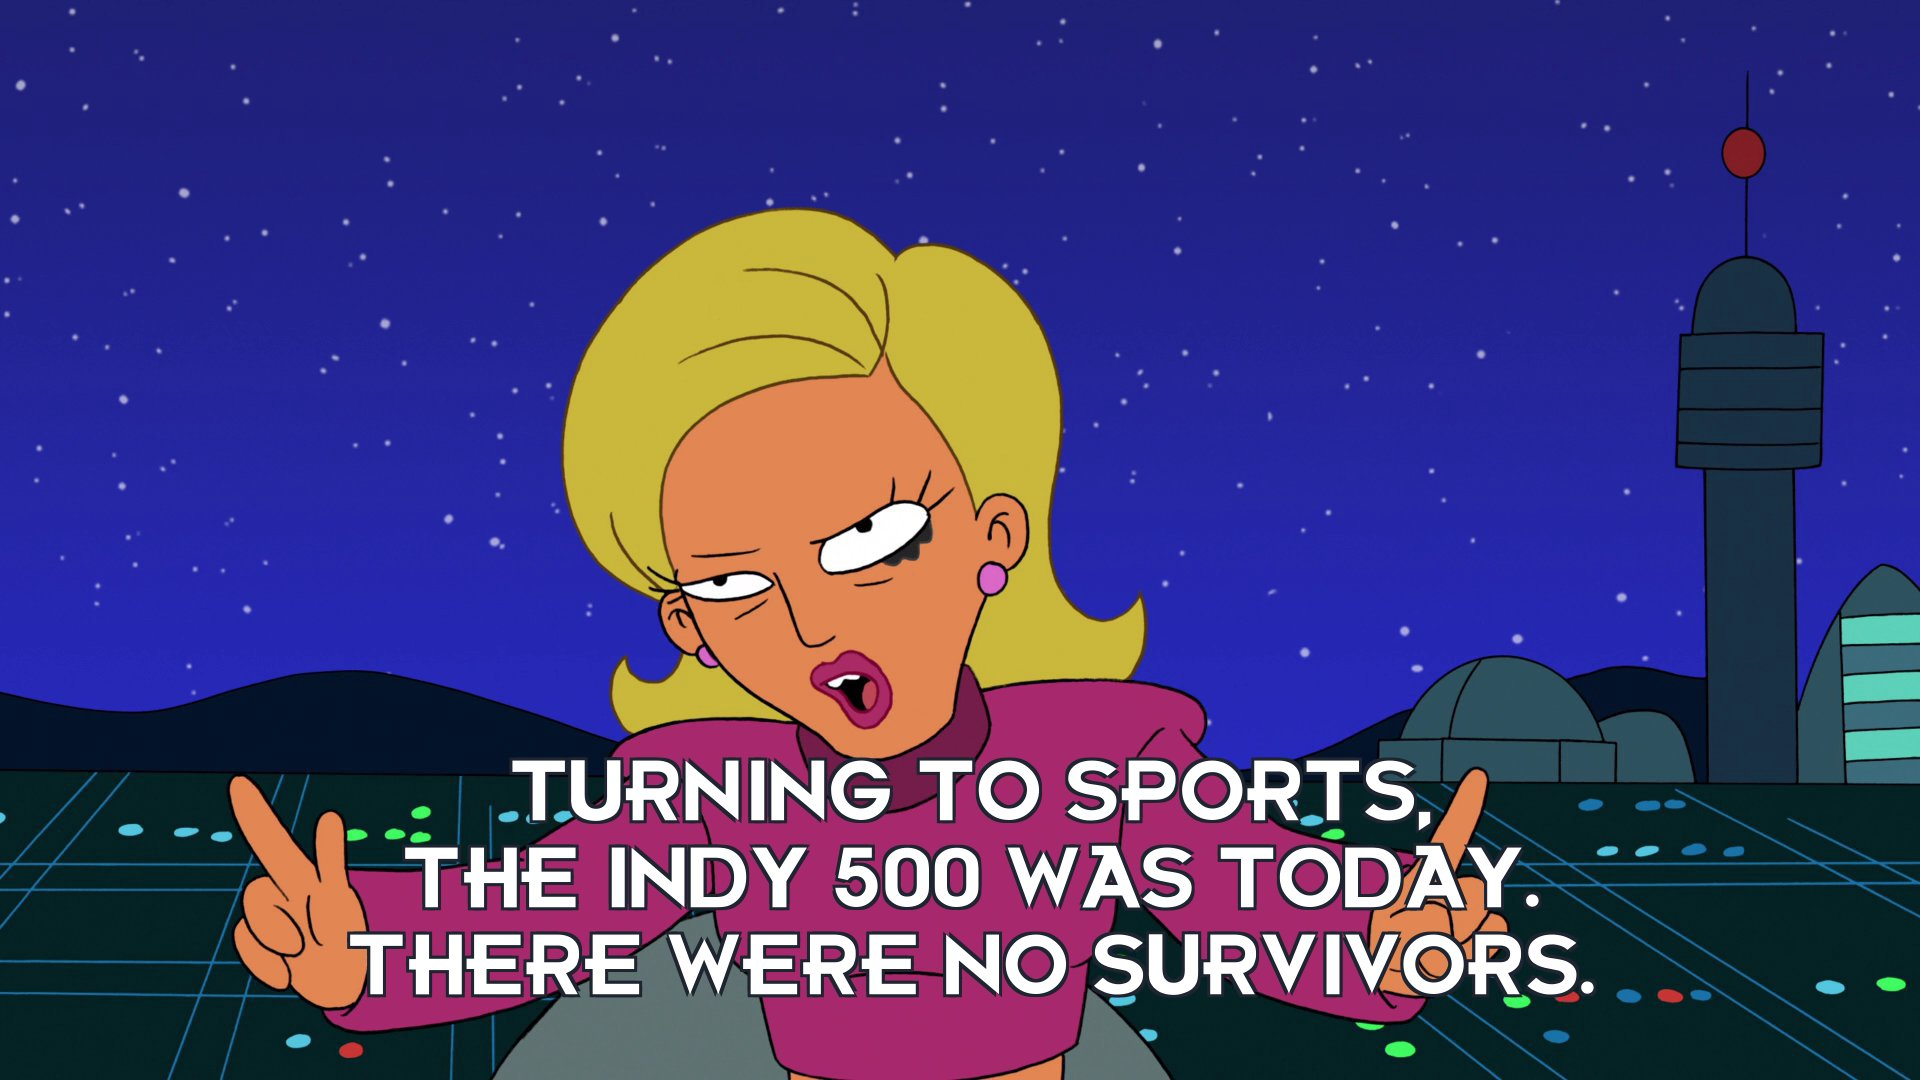 Linda van Schoonhoven: Turning to sports, the Indy 500 was today. There were no survivors.